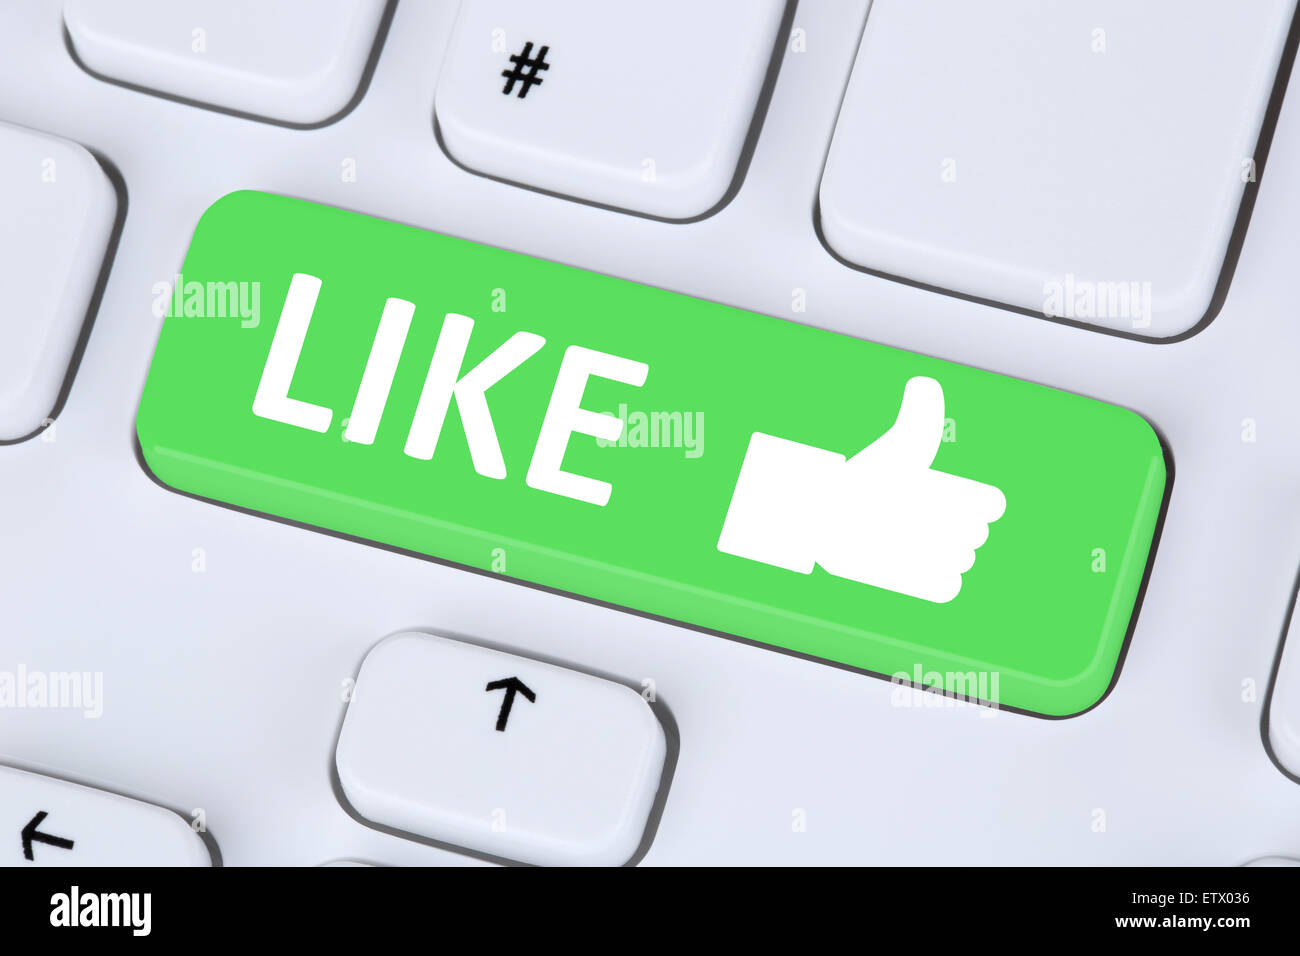 Like button icon thumb up social media or network on internet computer keyboard - Stock Image